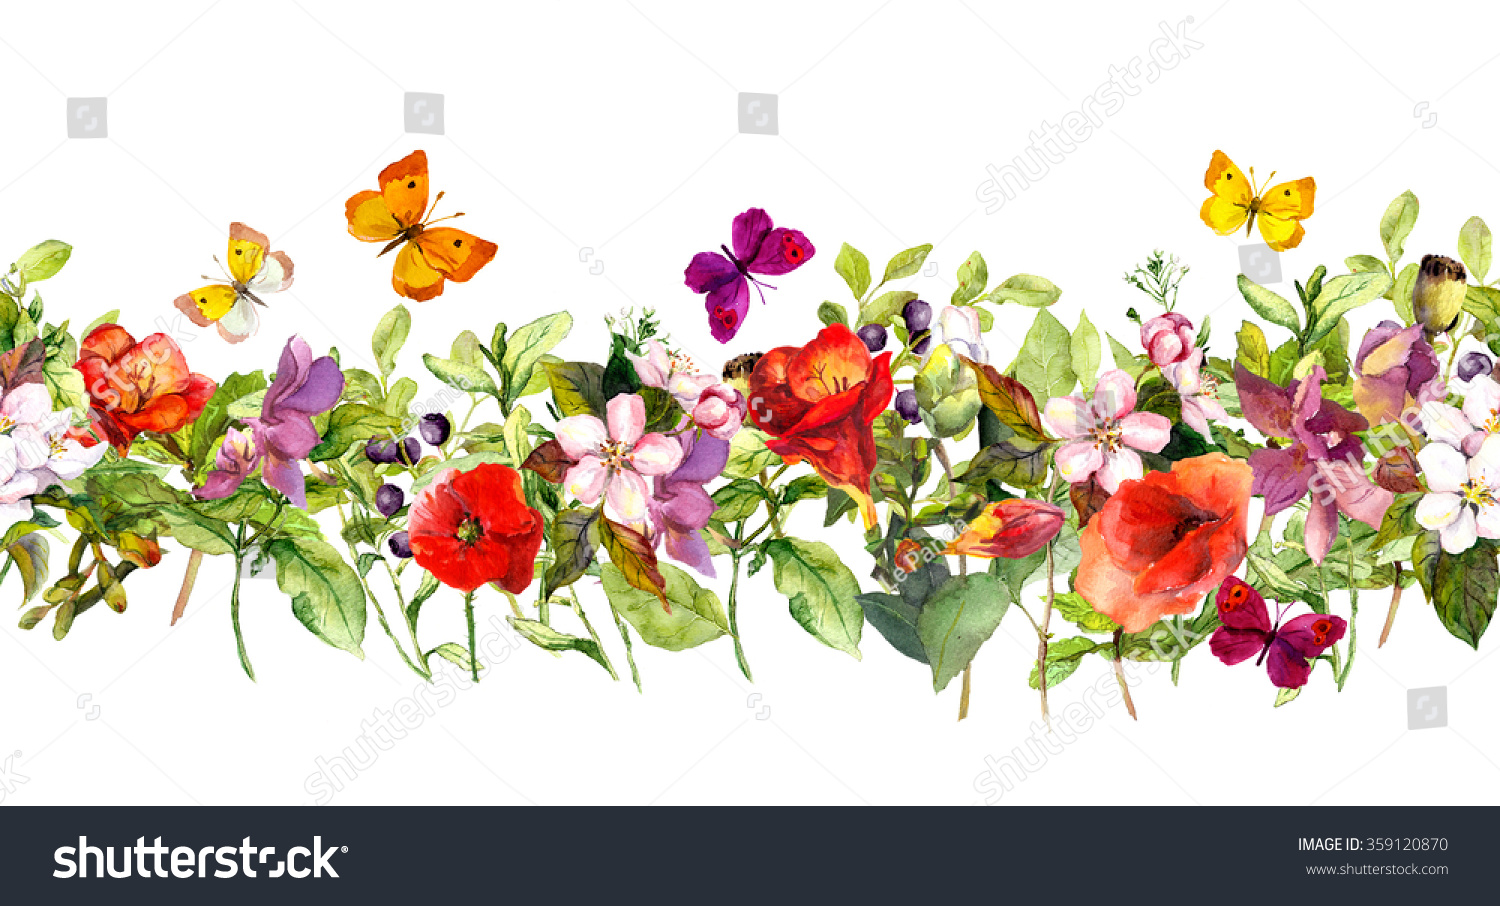 Floral Horizontal Border Watercolor Meadow Flowers Stock ...